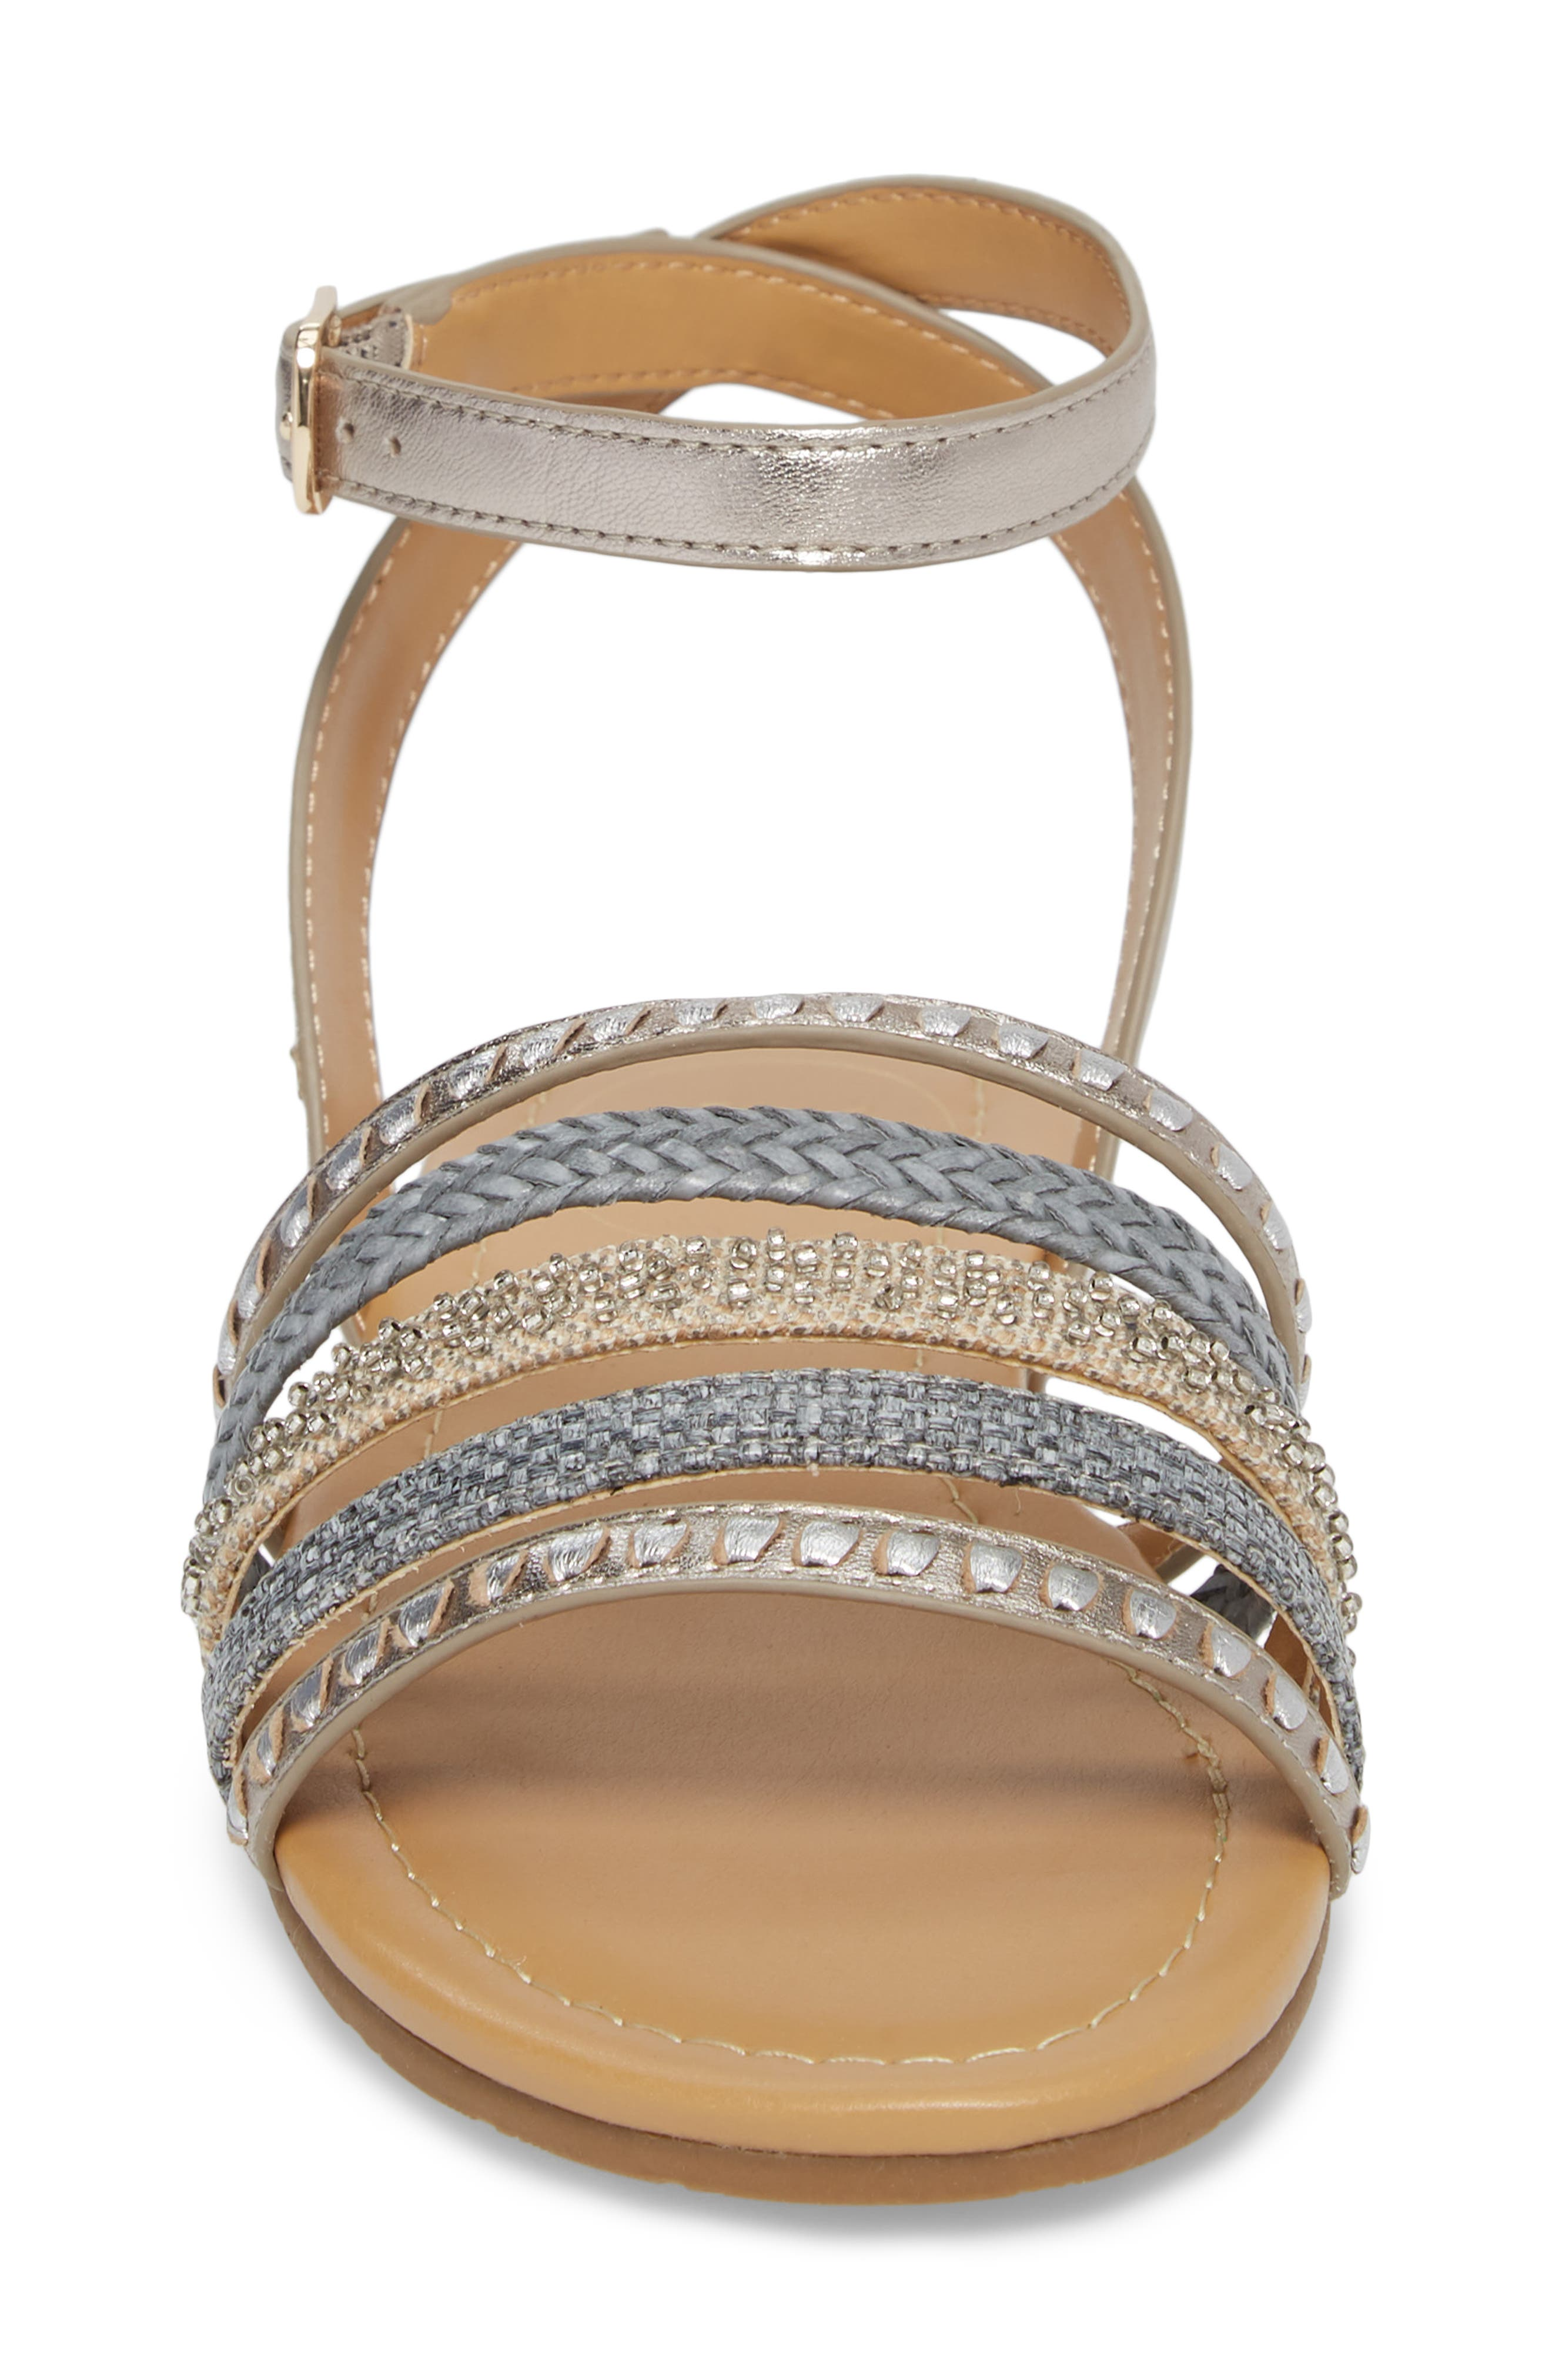 Hannah Braided Embellished Sandal,                             Alternate thumbnail 4, color,                             040